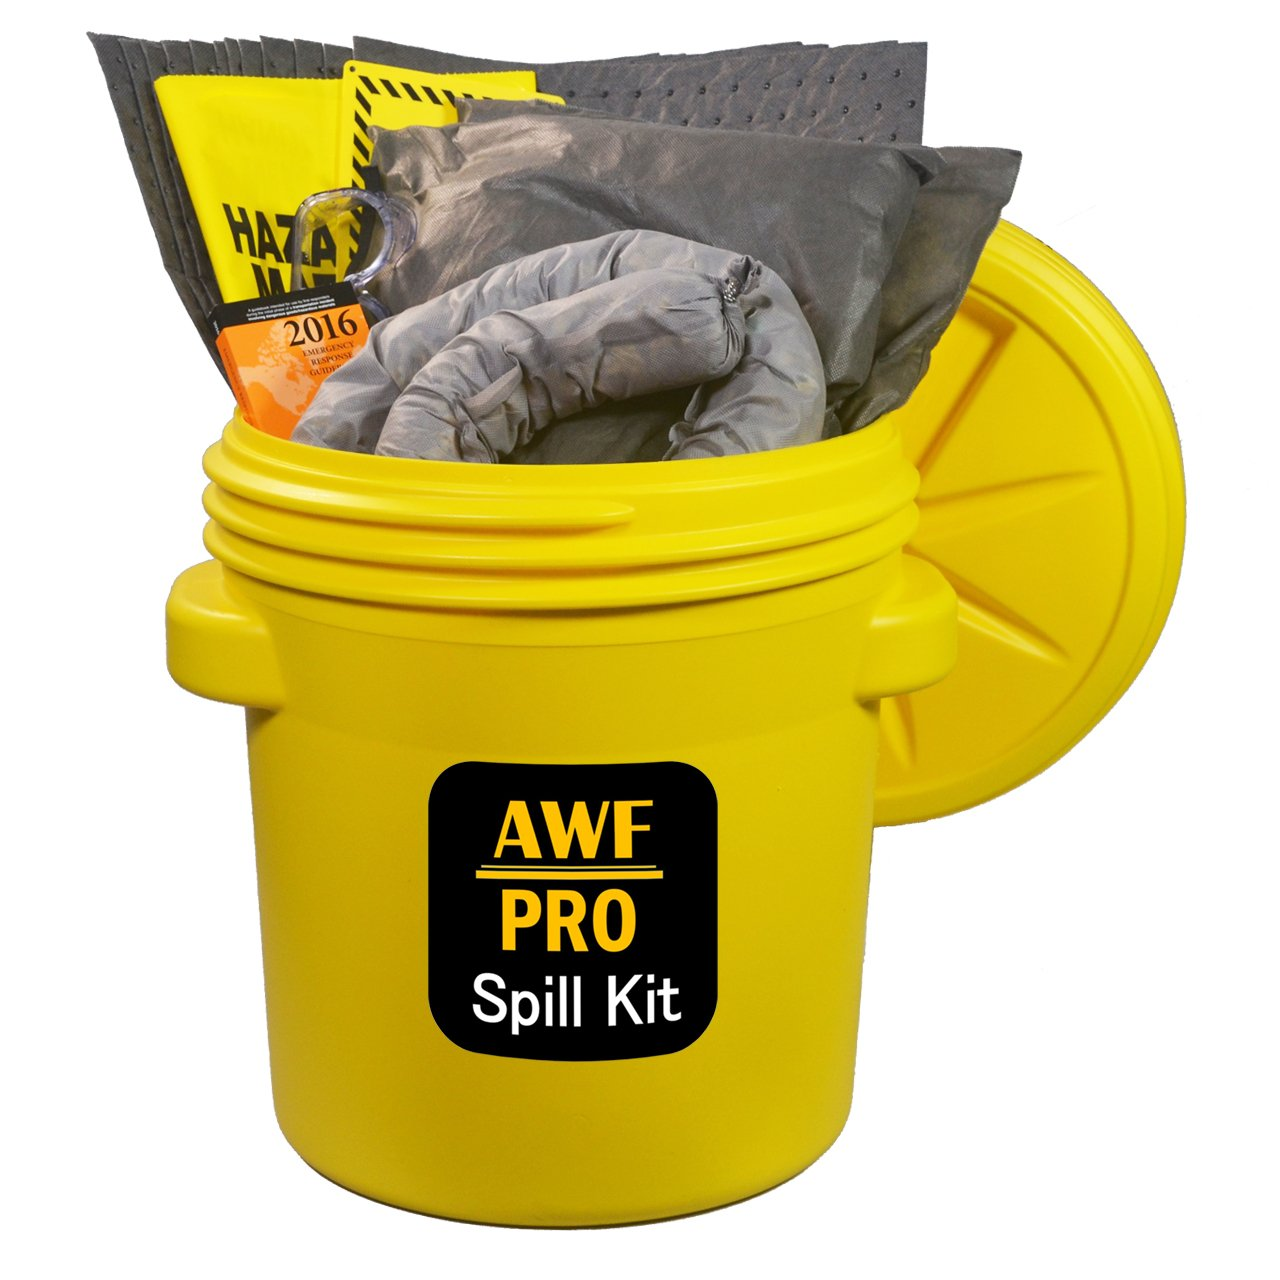 """20 Gallon Universal Spill Kit Includes Overpack Drum,12 Pads 15""""x19"""", 3 Socks 3""""x12', 2 Pillows 18""""x18"""", Chemical Gloves, 3 Hazmat Bags, Safety Goggles, Emergency Guide Book,Spill Kit Sign"""